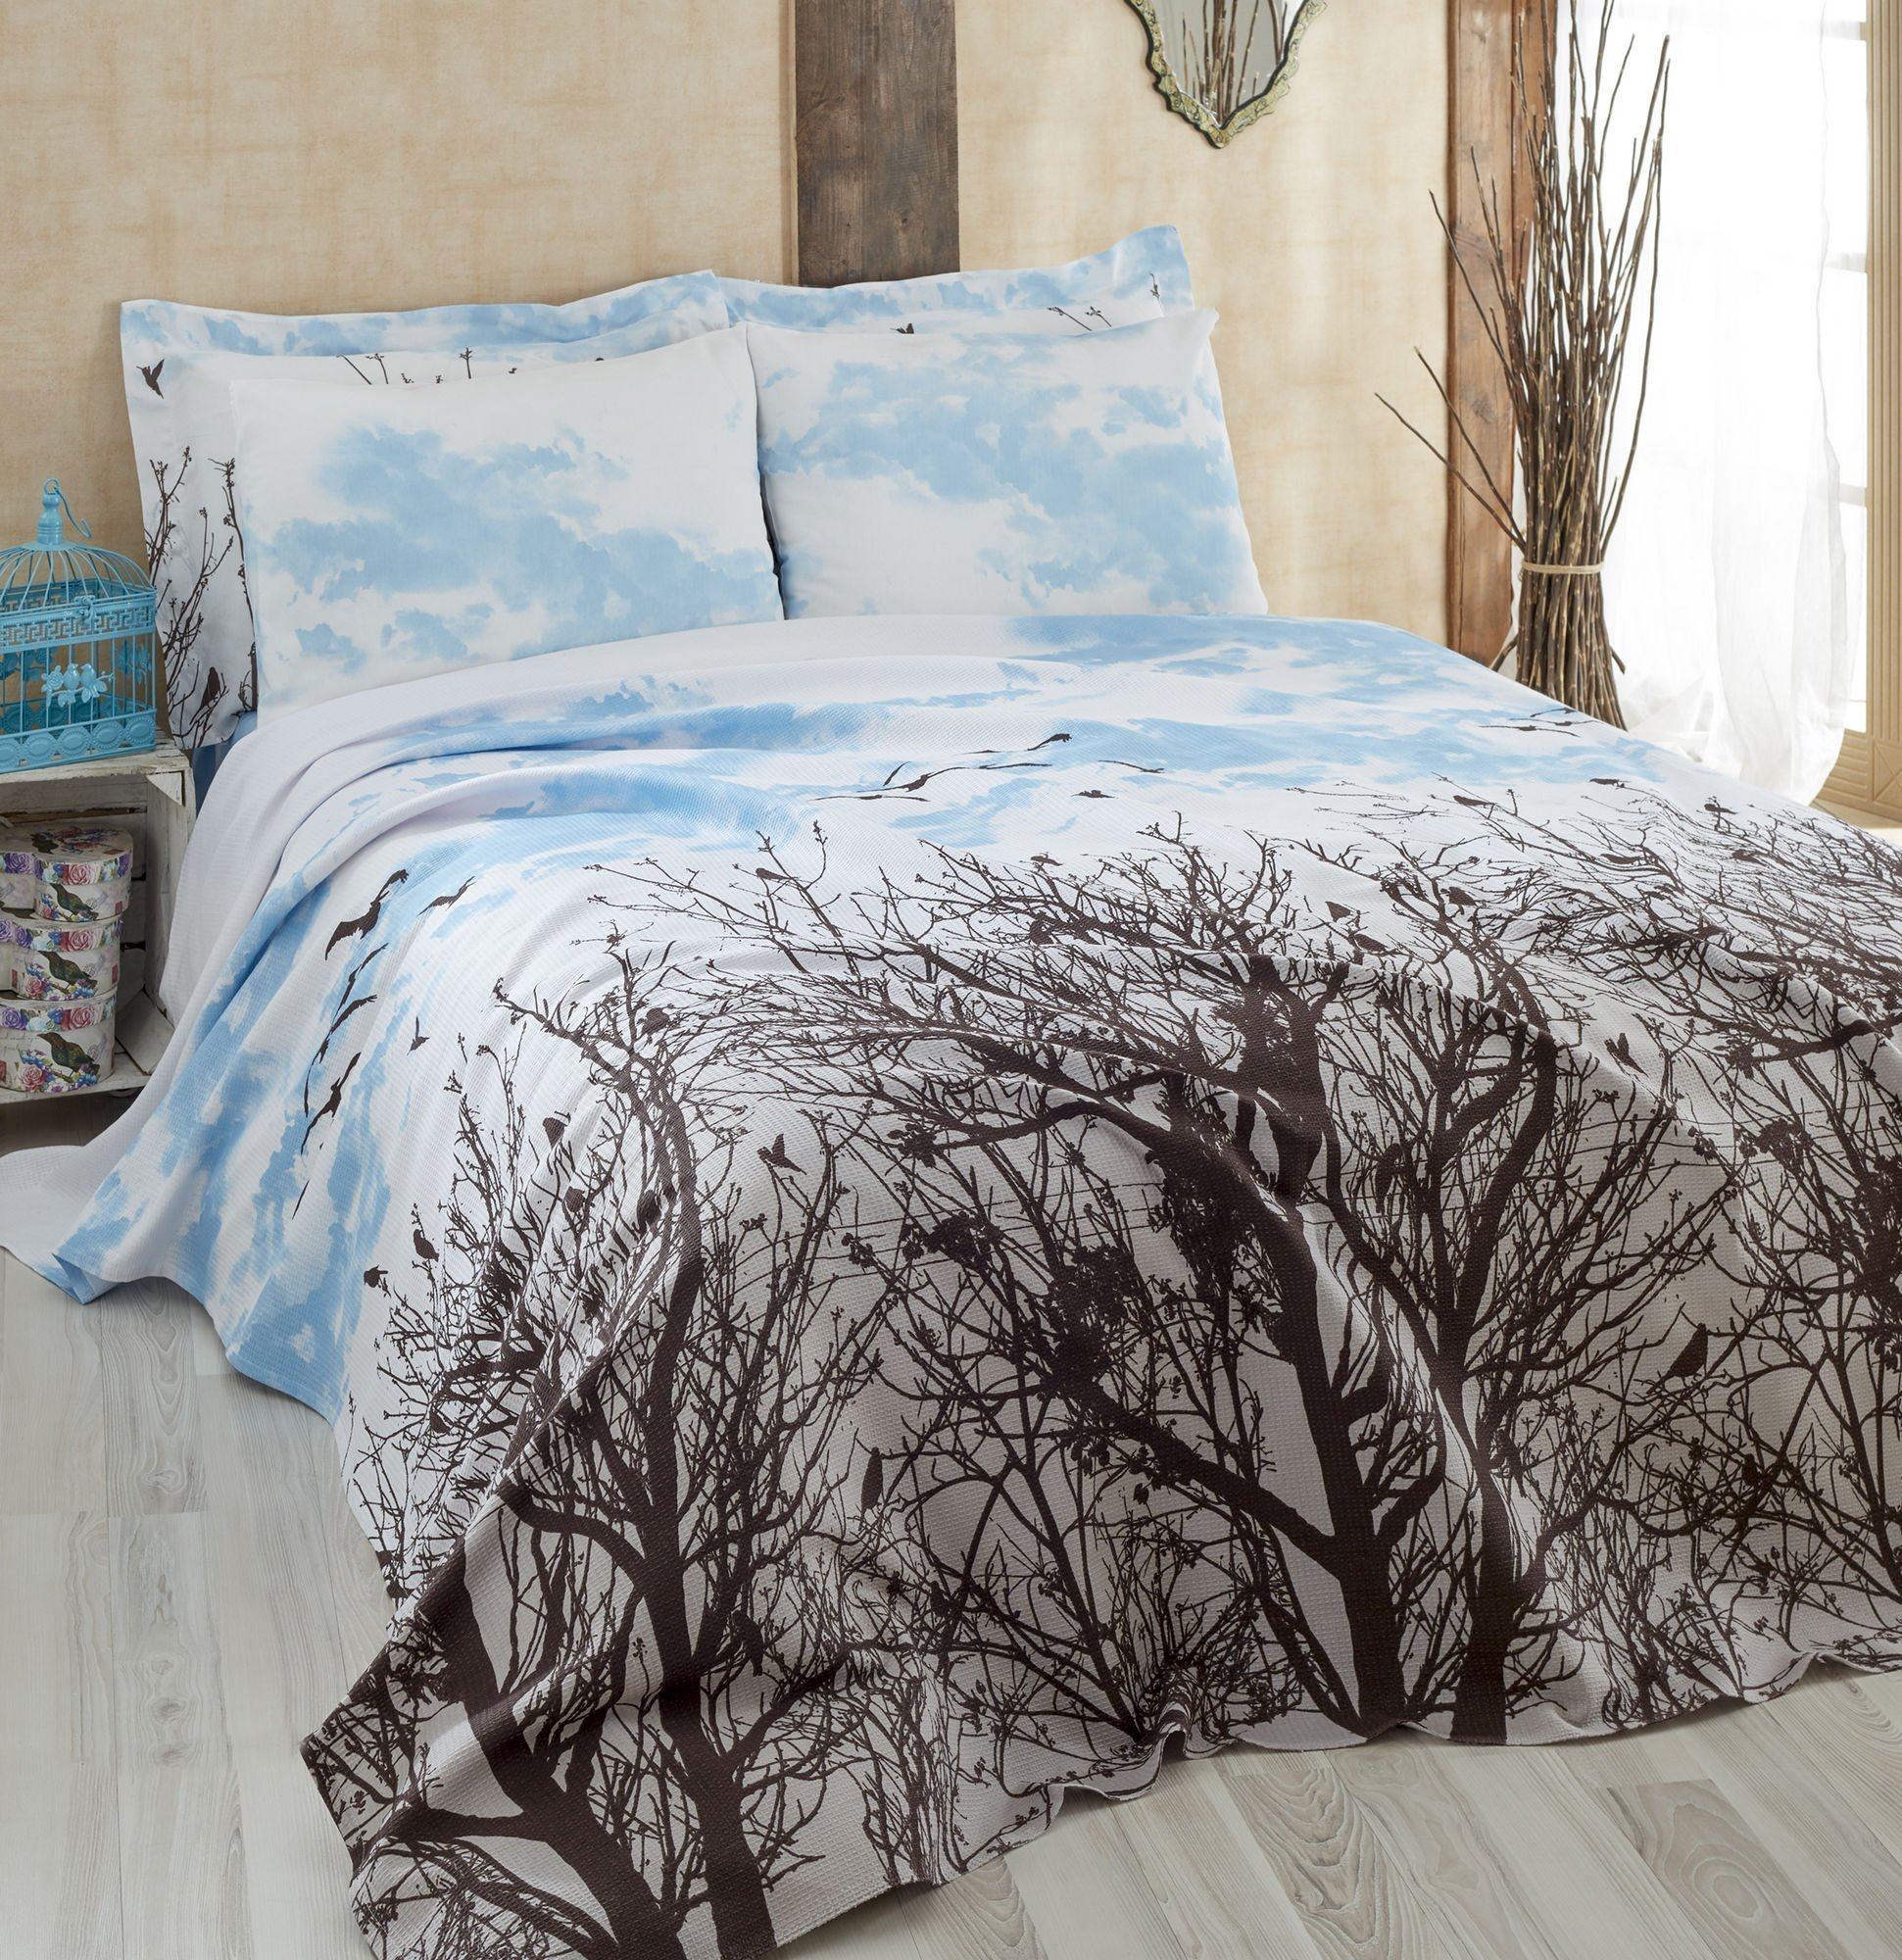 LaModaHome Luxury Soft Colored Bedroom Bedding 100% Cotton Single Coverlet (Pique) Thin Coverlet Summer/Tree Sky Bird Animal Nature Plant Cloud Blue and Brown/Single